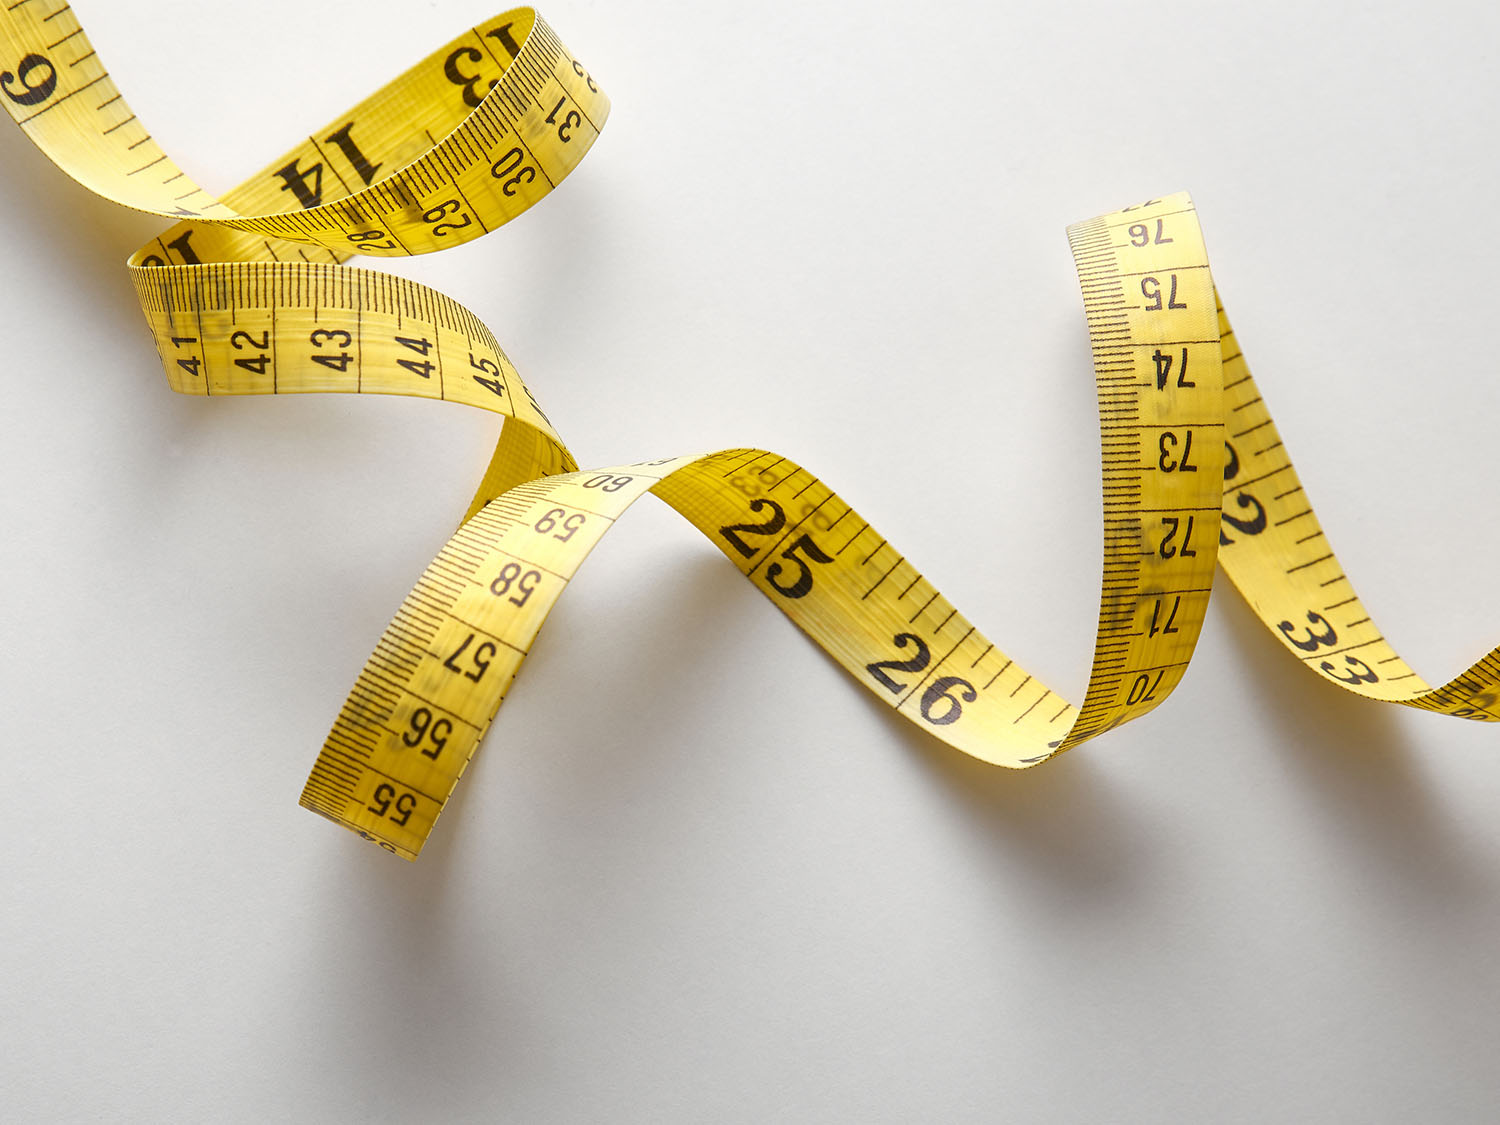 Measuring Pumpkins And Our World